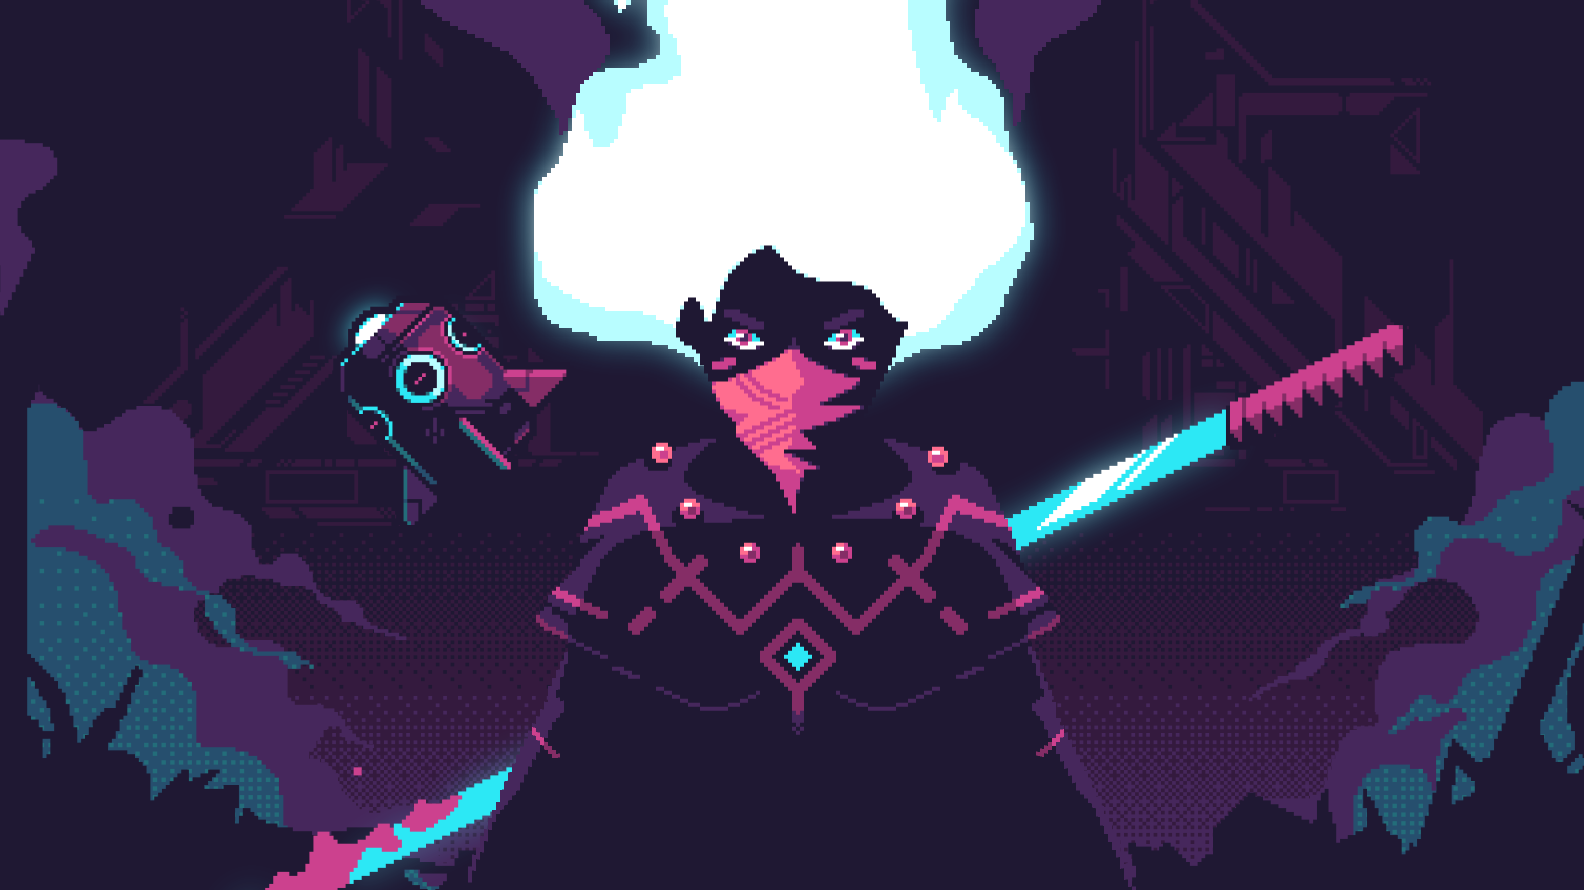 If You Like Celeste But Wish It Had More Swords, Try Scourgebringer